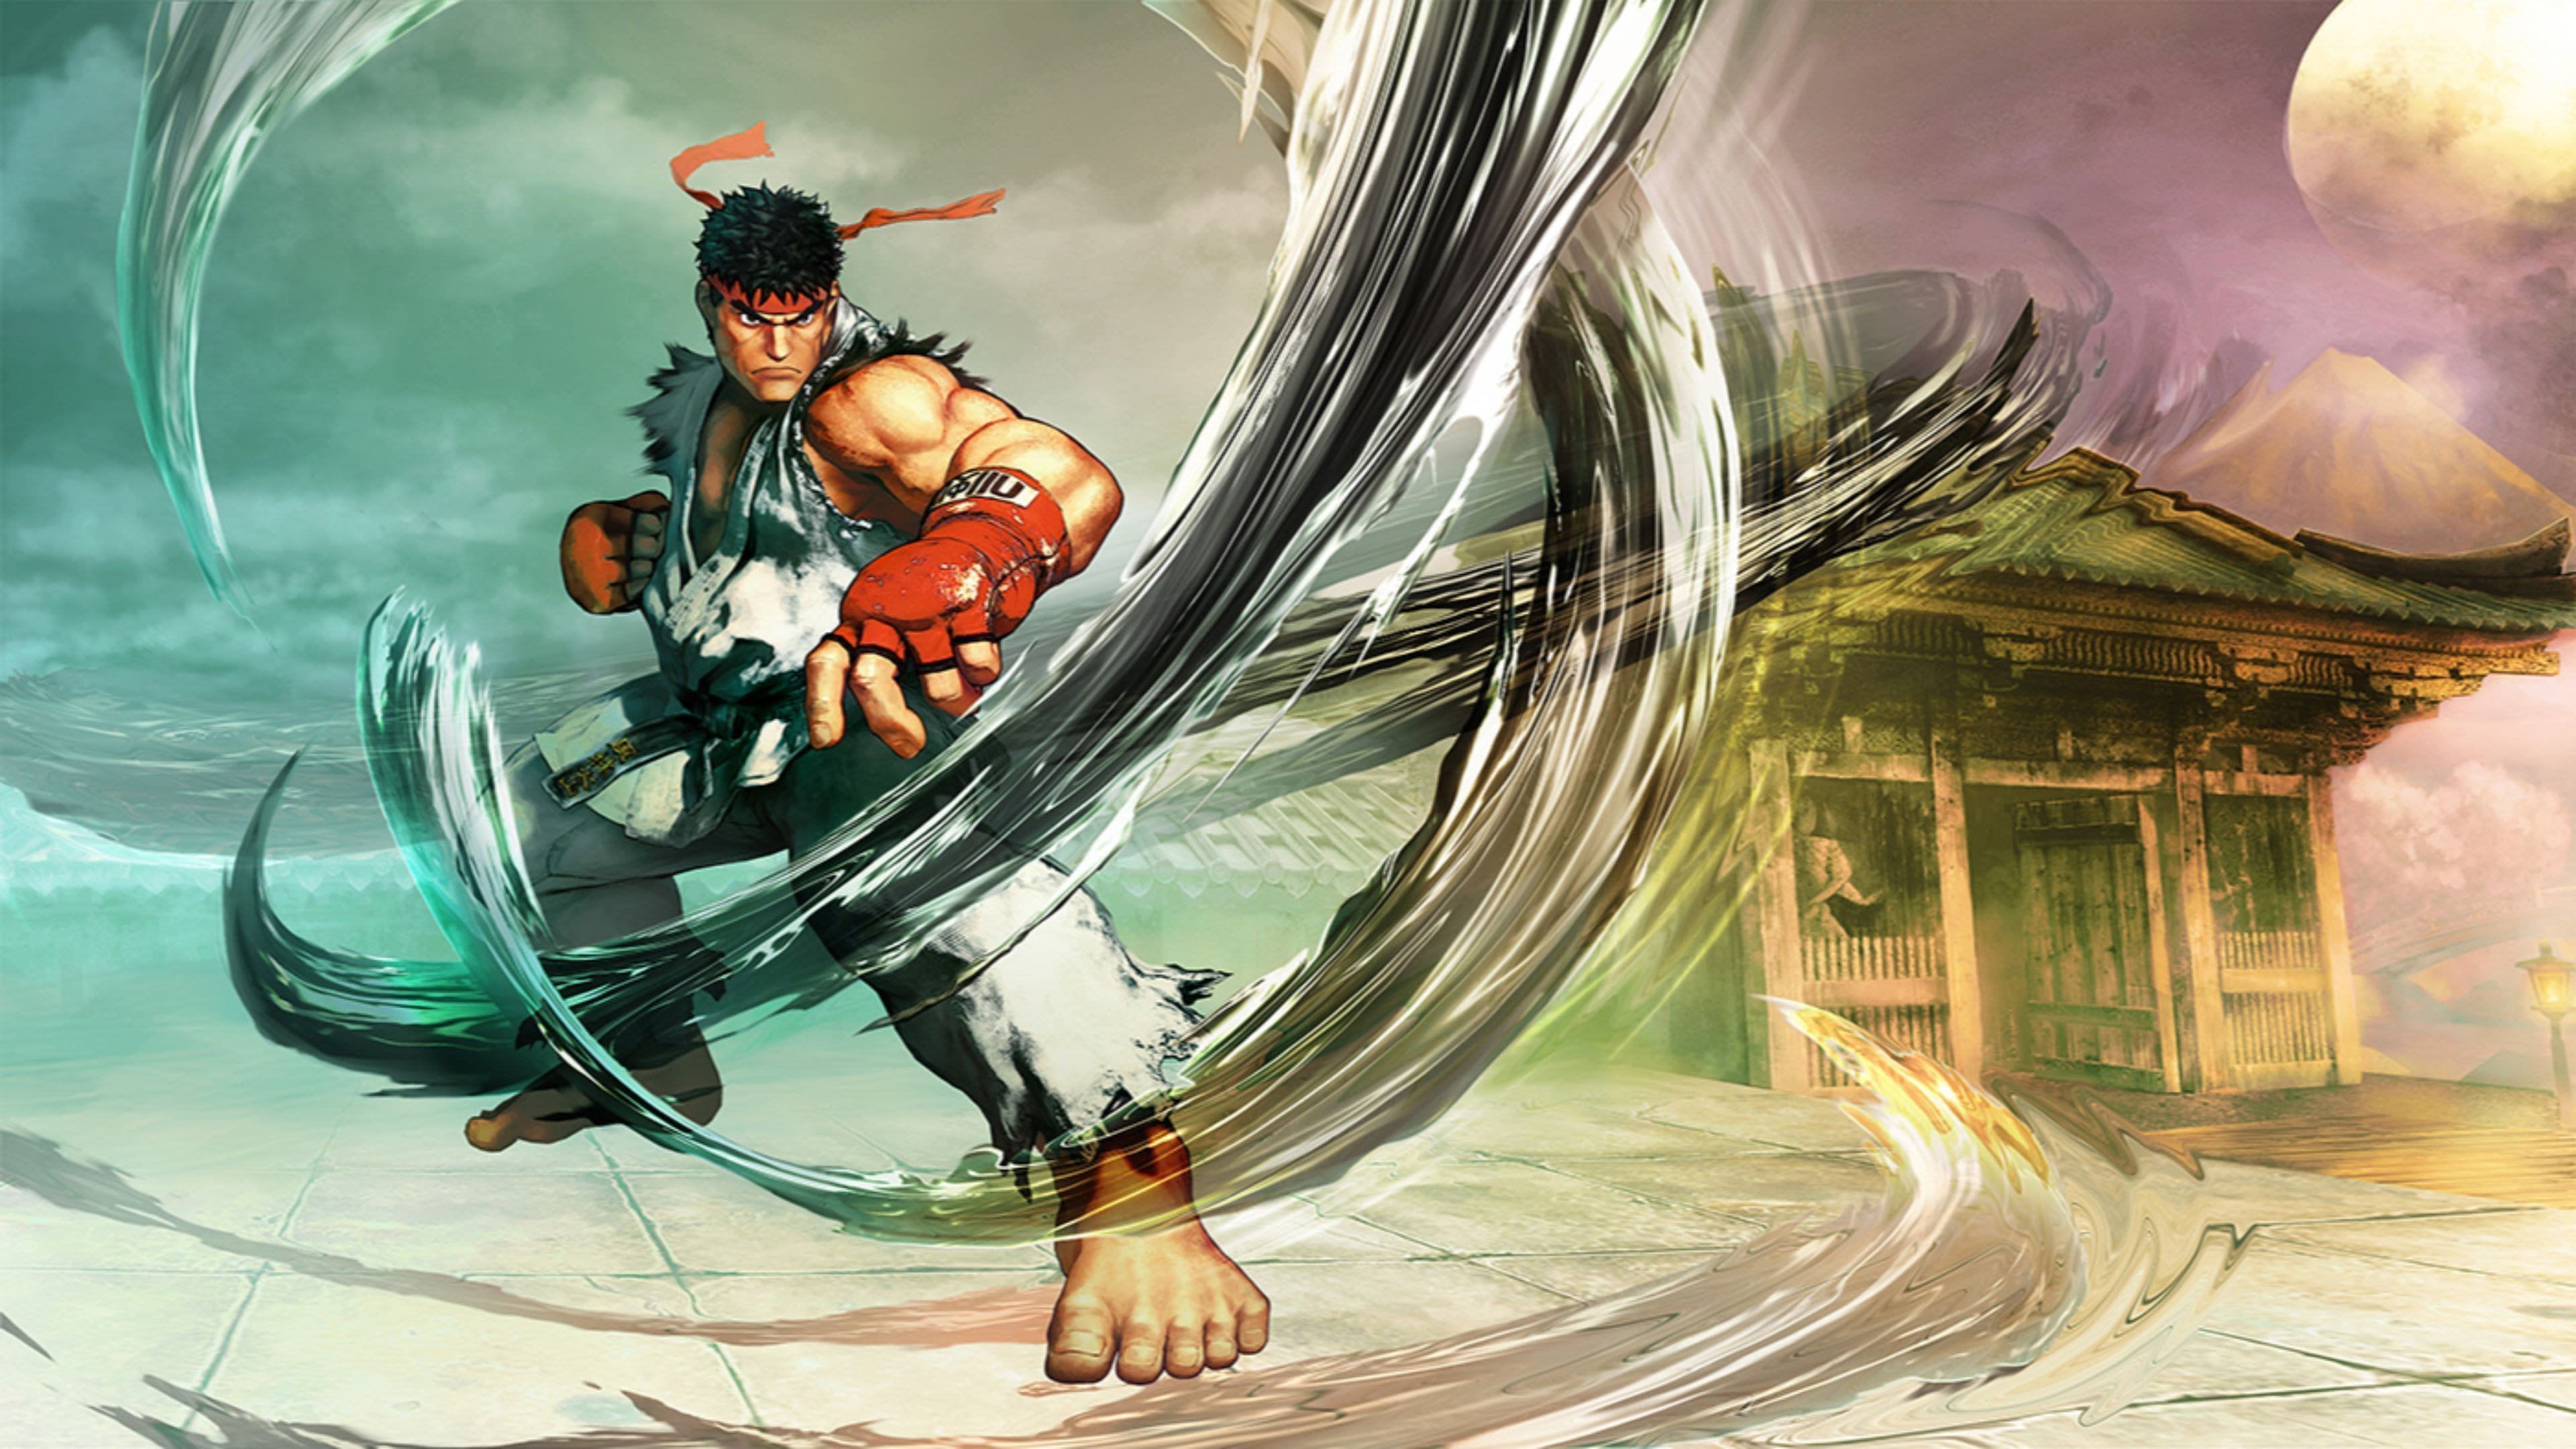 Street Fighter 5 HQ wallpapers